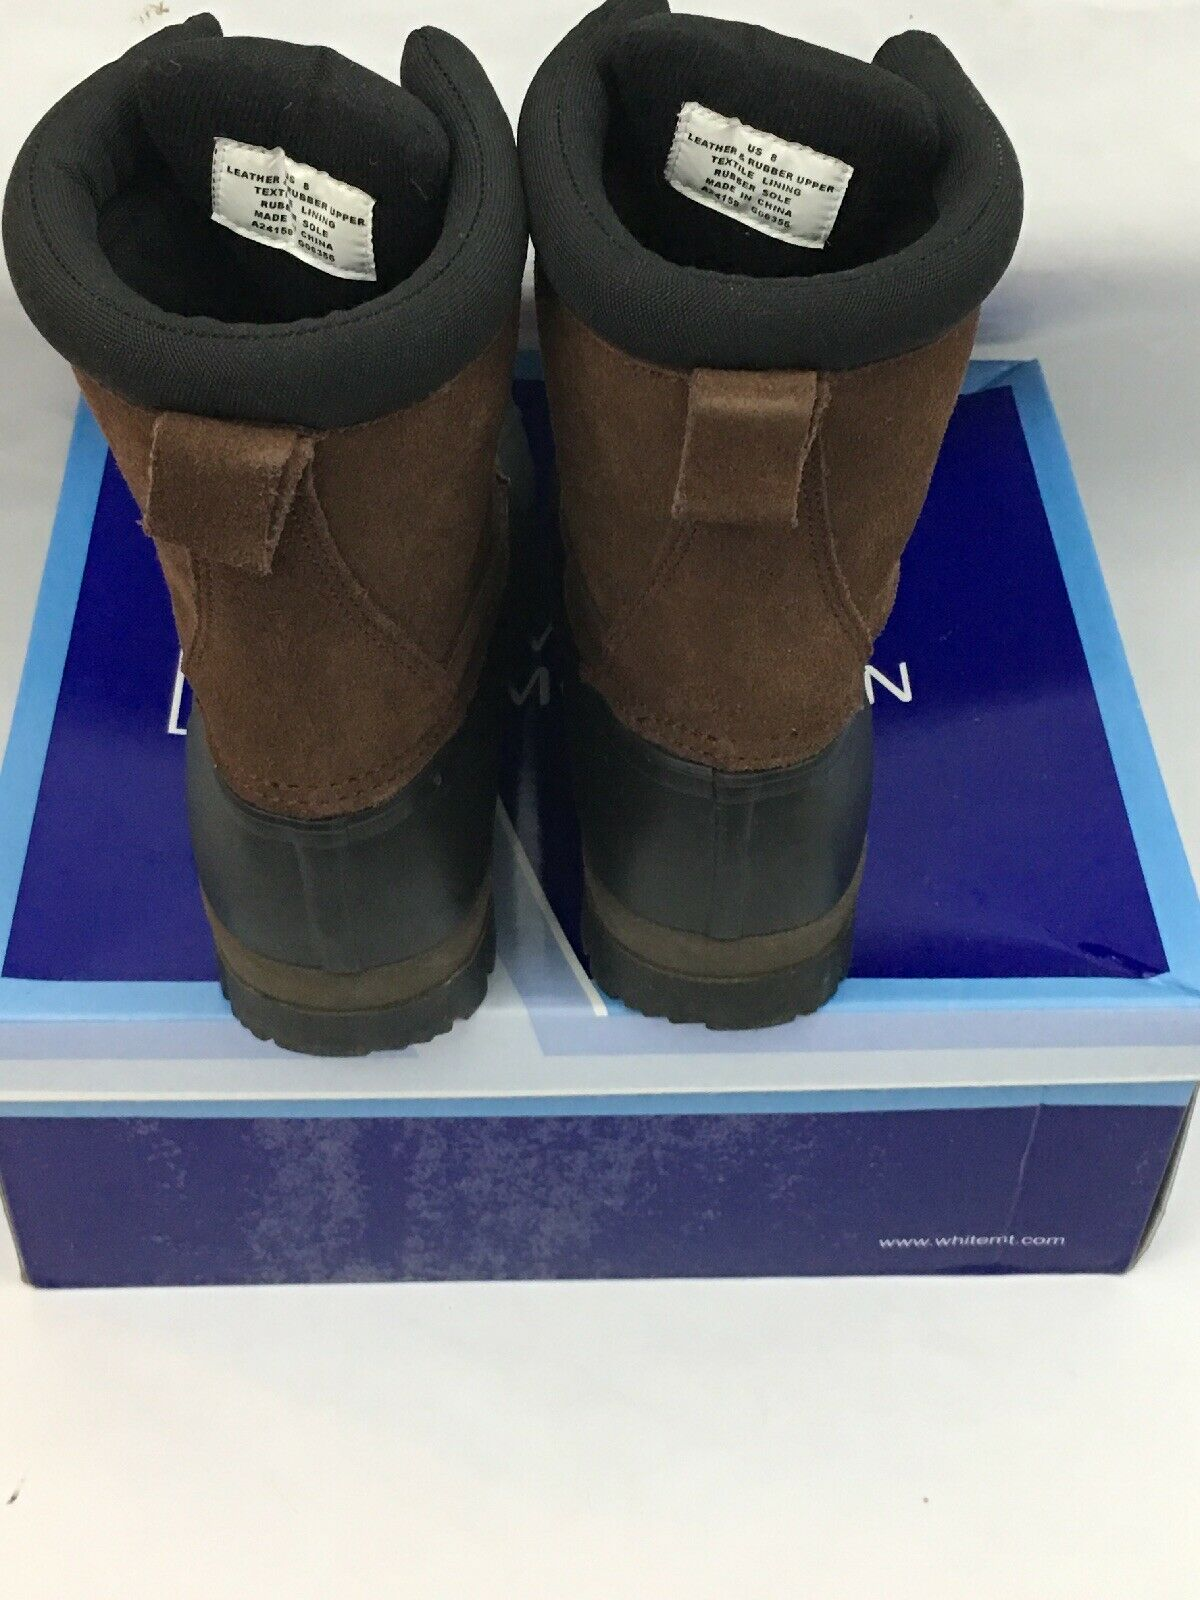 WHITE MOUNTAIN BROWN SUEDE Black LEATHER BOOTS TANTALAS 8M 8M 8M 546938